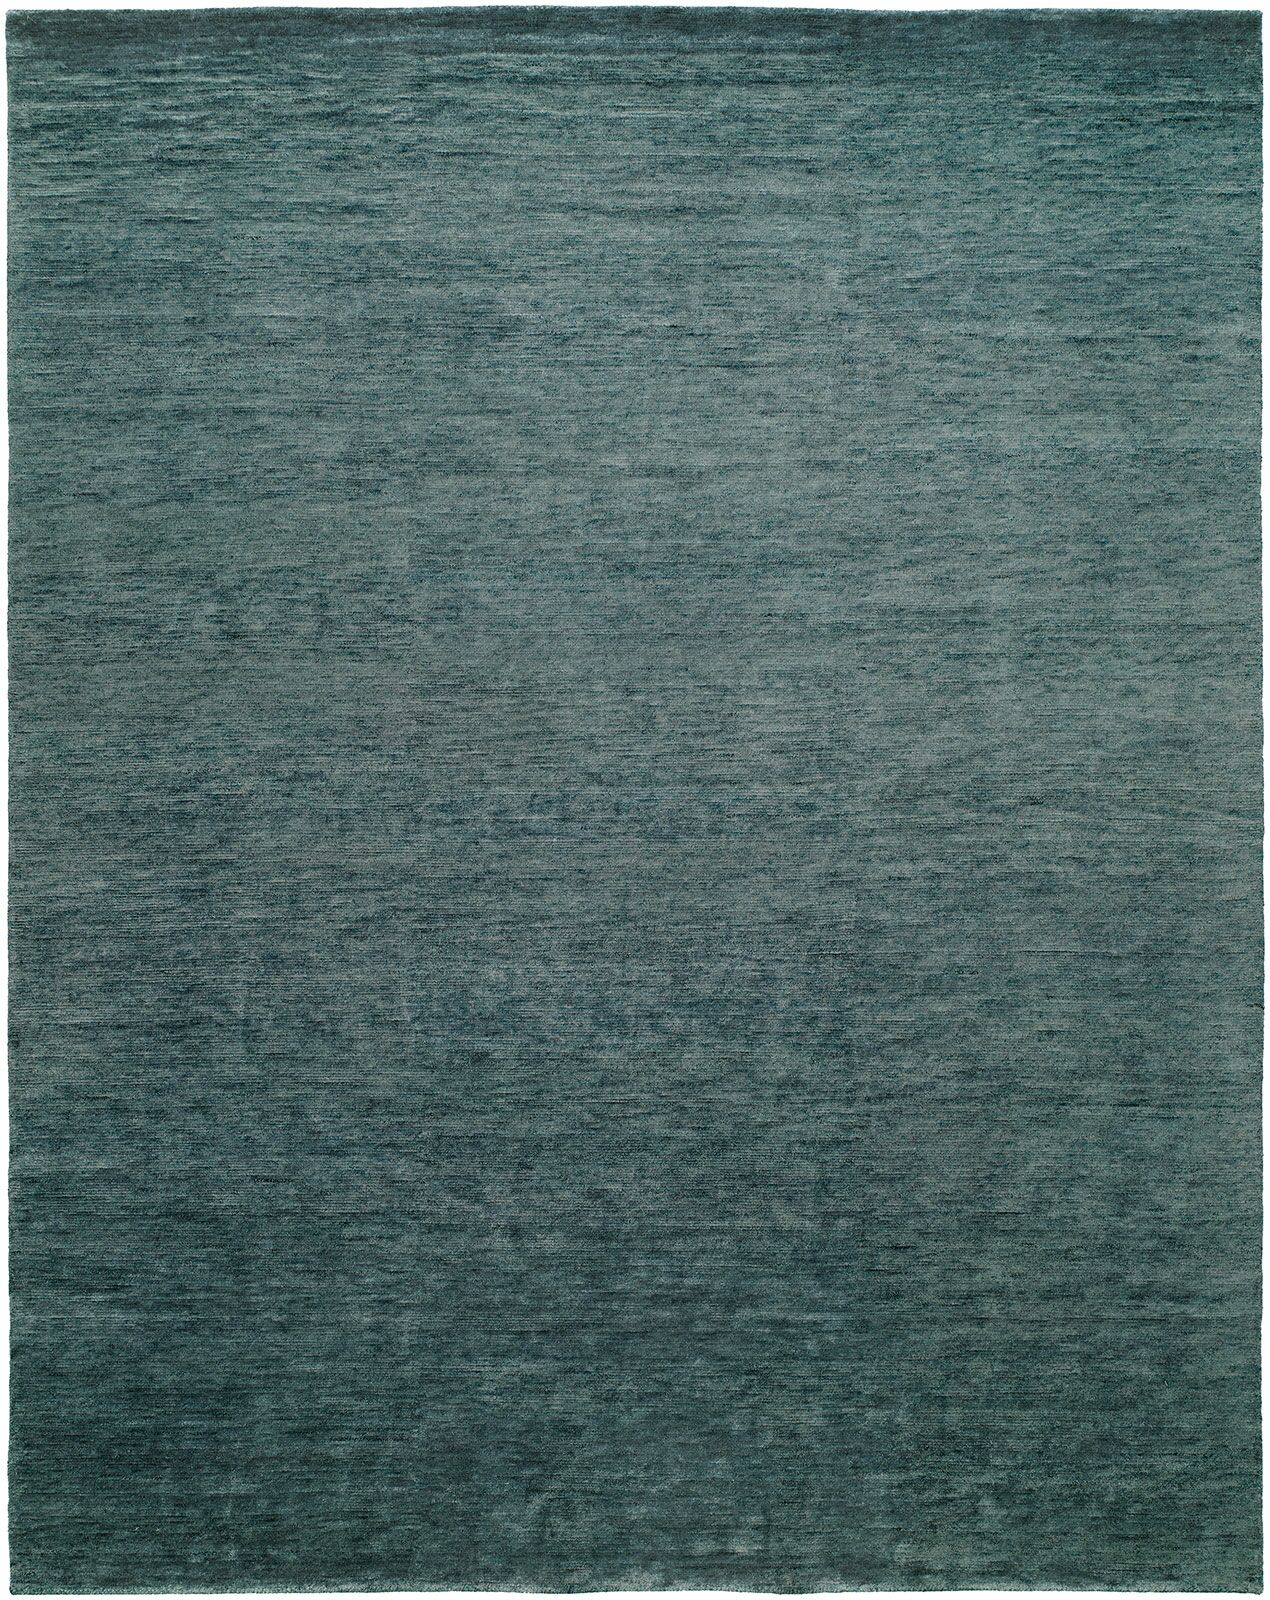 Decker Hand-Knotted Wool Blue Area Rug Rug Size: Rectangle 4' x 6'